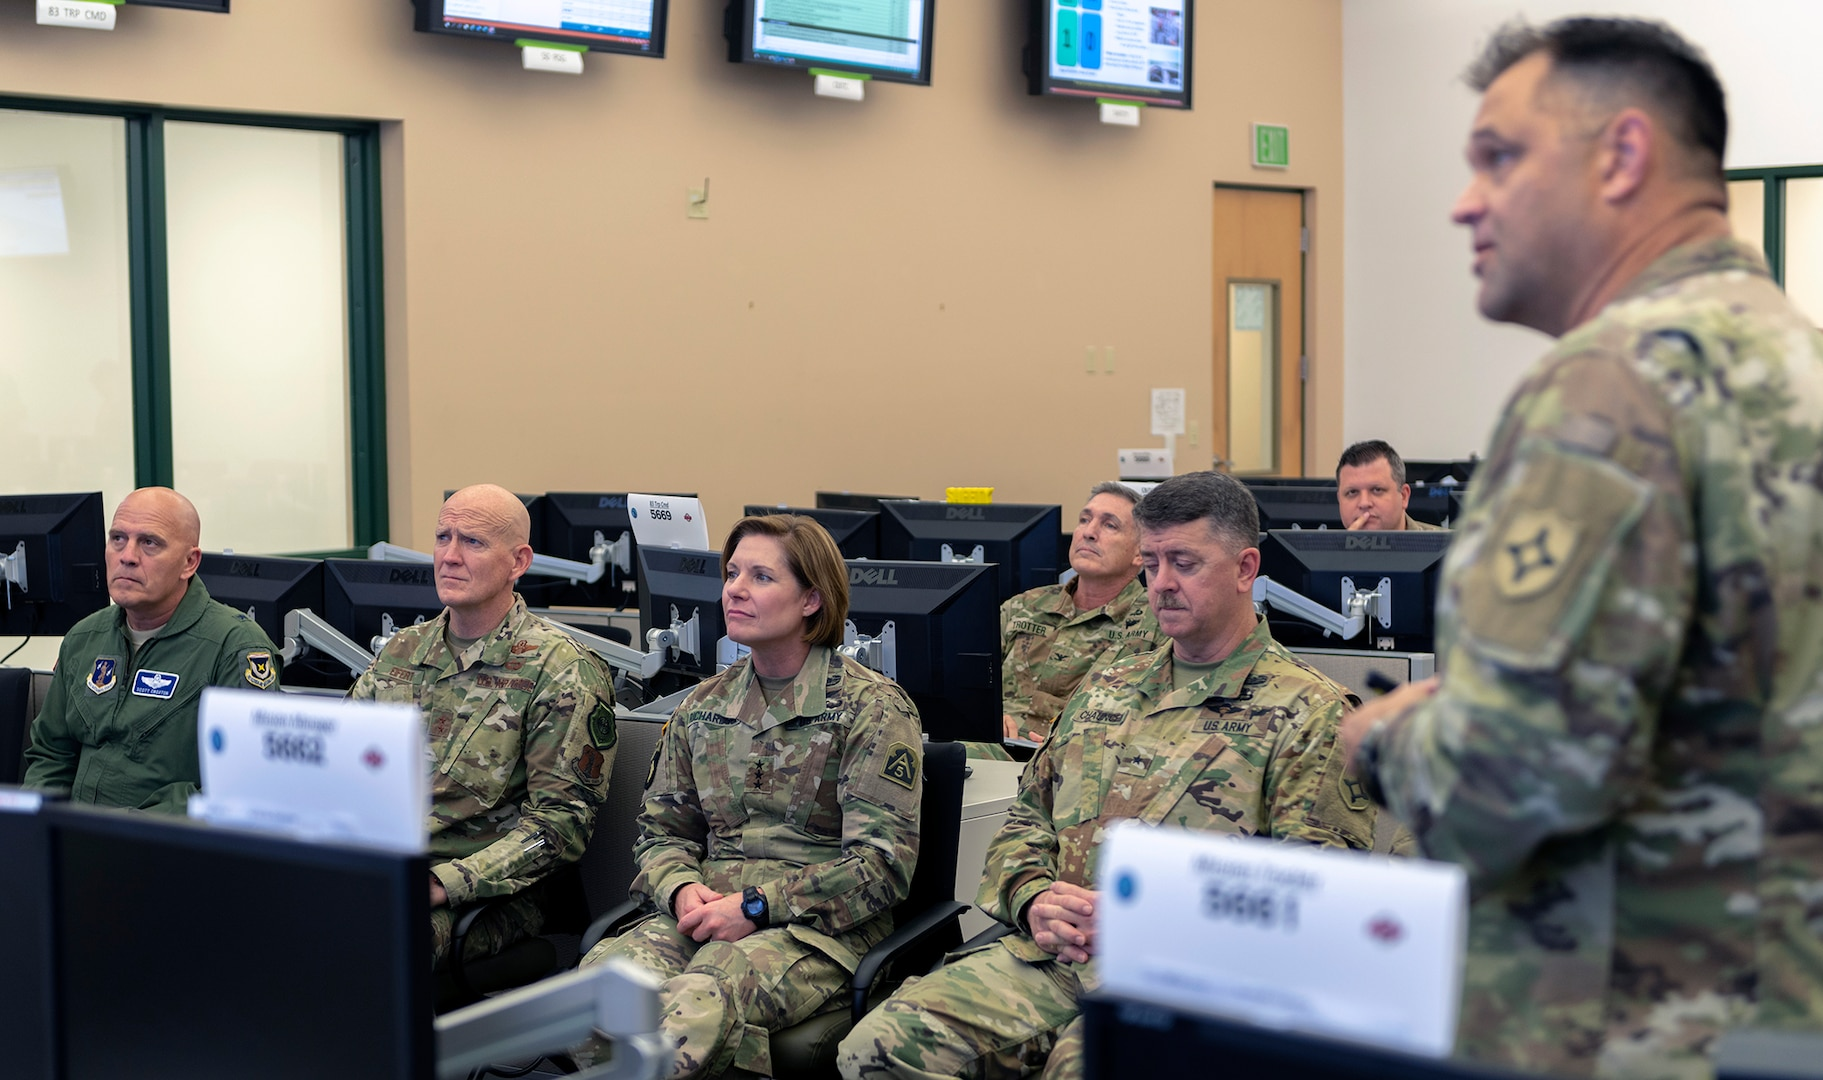 Lt. Gen. Laura Richardson, commander, U.S. Army North, tours the Florida National Guard's Joint Operations Center Sept. 5. She received an update on the Florida Guard response from Col. Mike Ladd, Joint Task Force Director of Operations, and Maj. Gen. Jim Eifert, the Adjutant General of Florida at Camp Blanding, Florida.